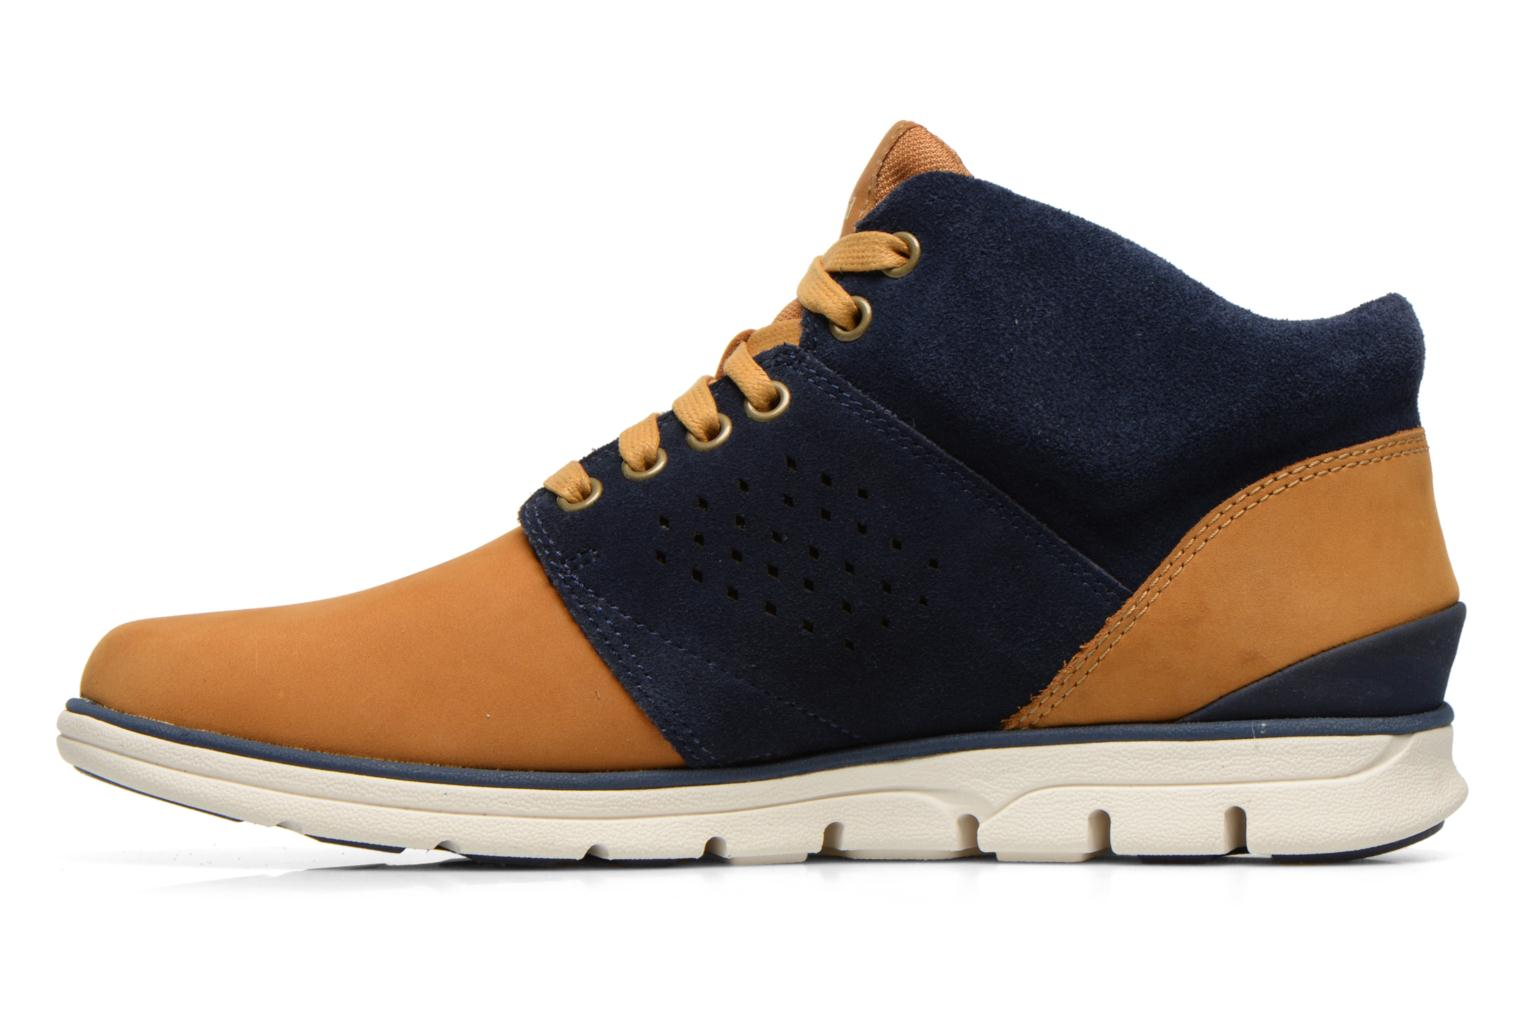 Cab Bradstreet Timberland Beige Half Wheat v6Yfby7g